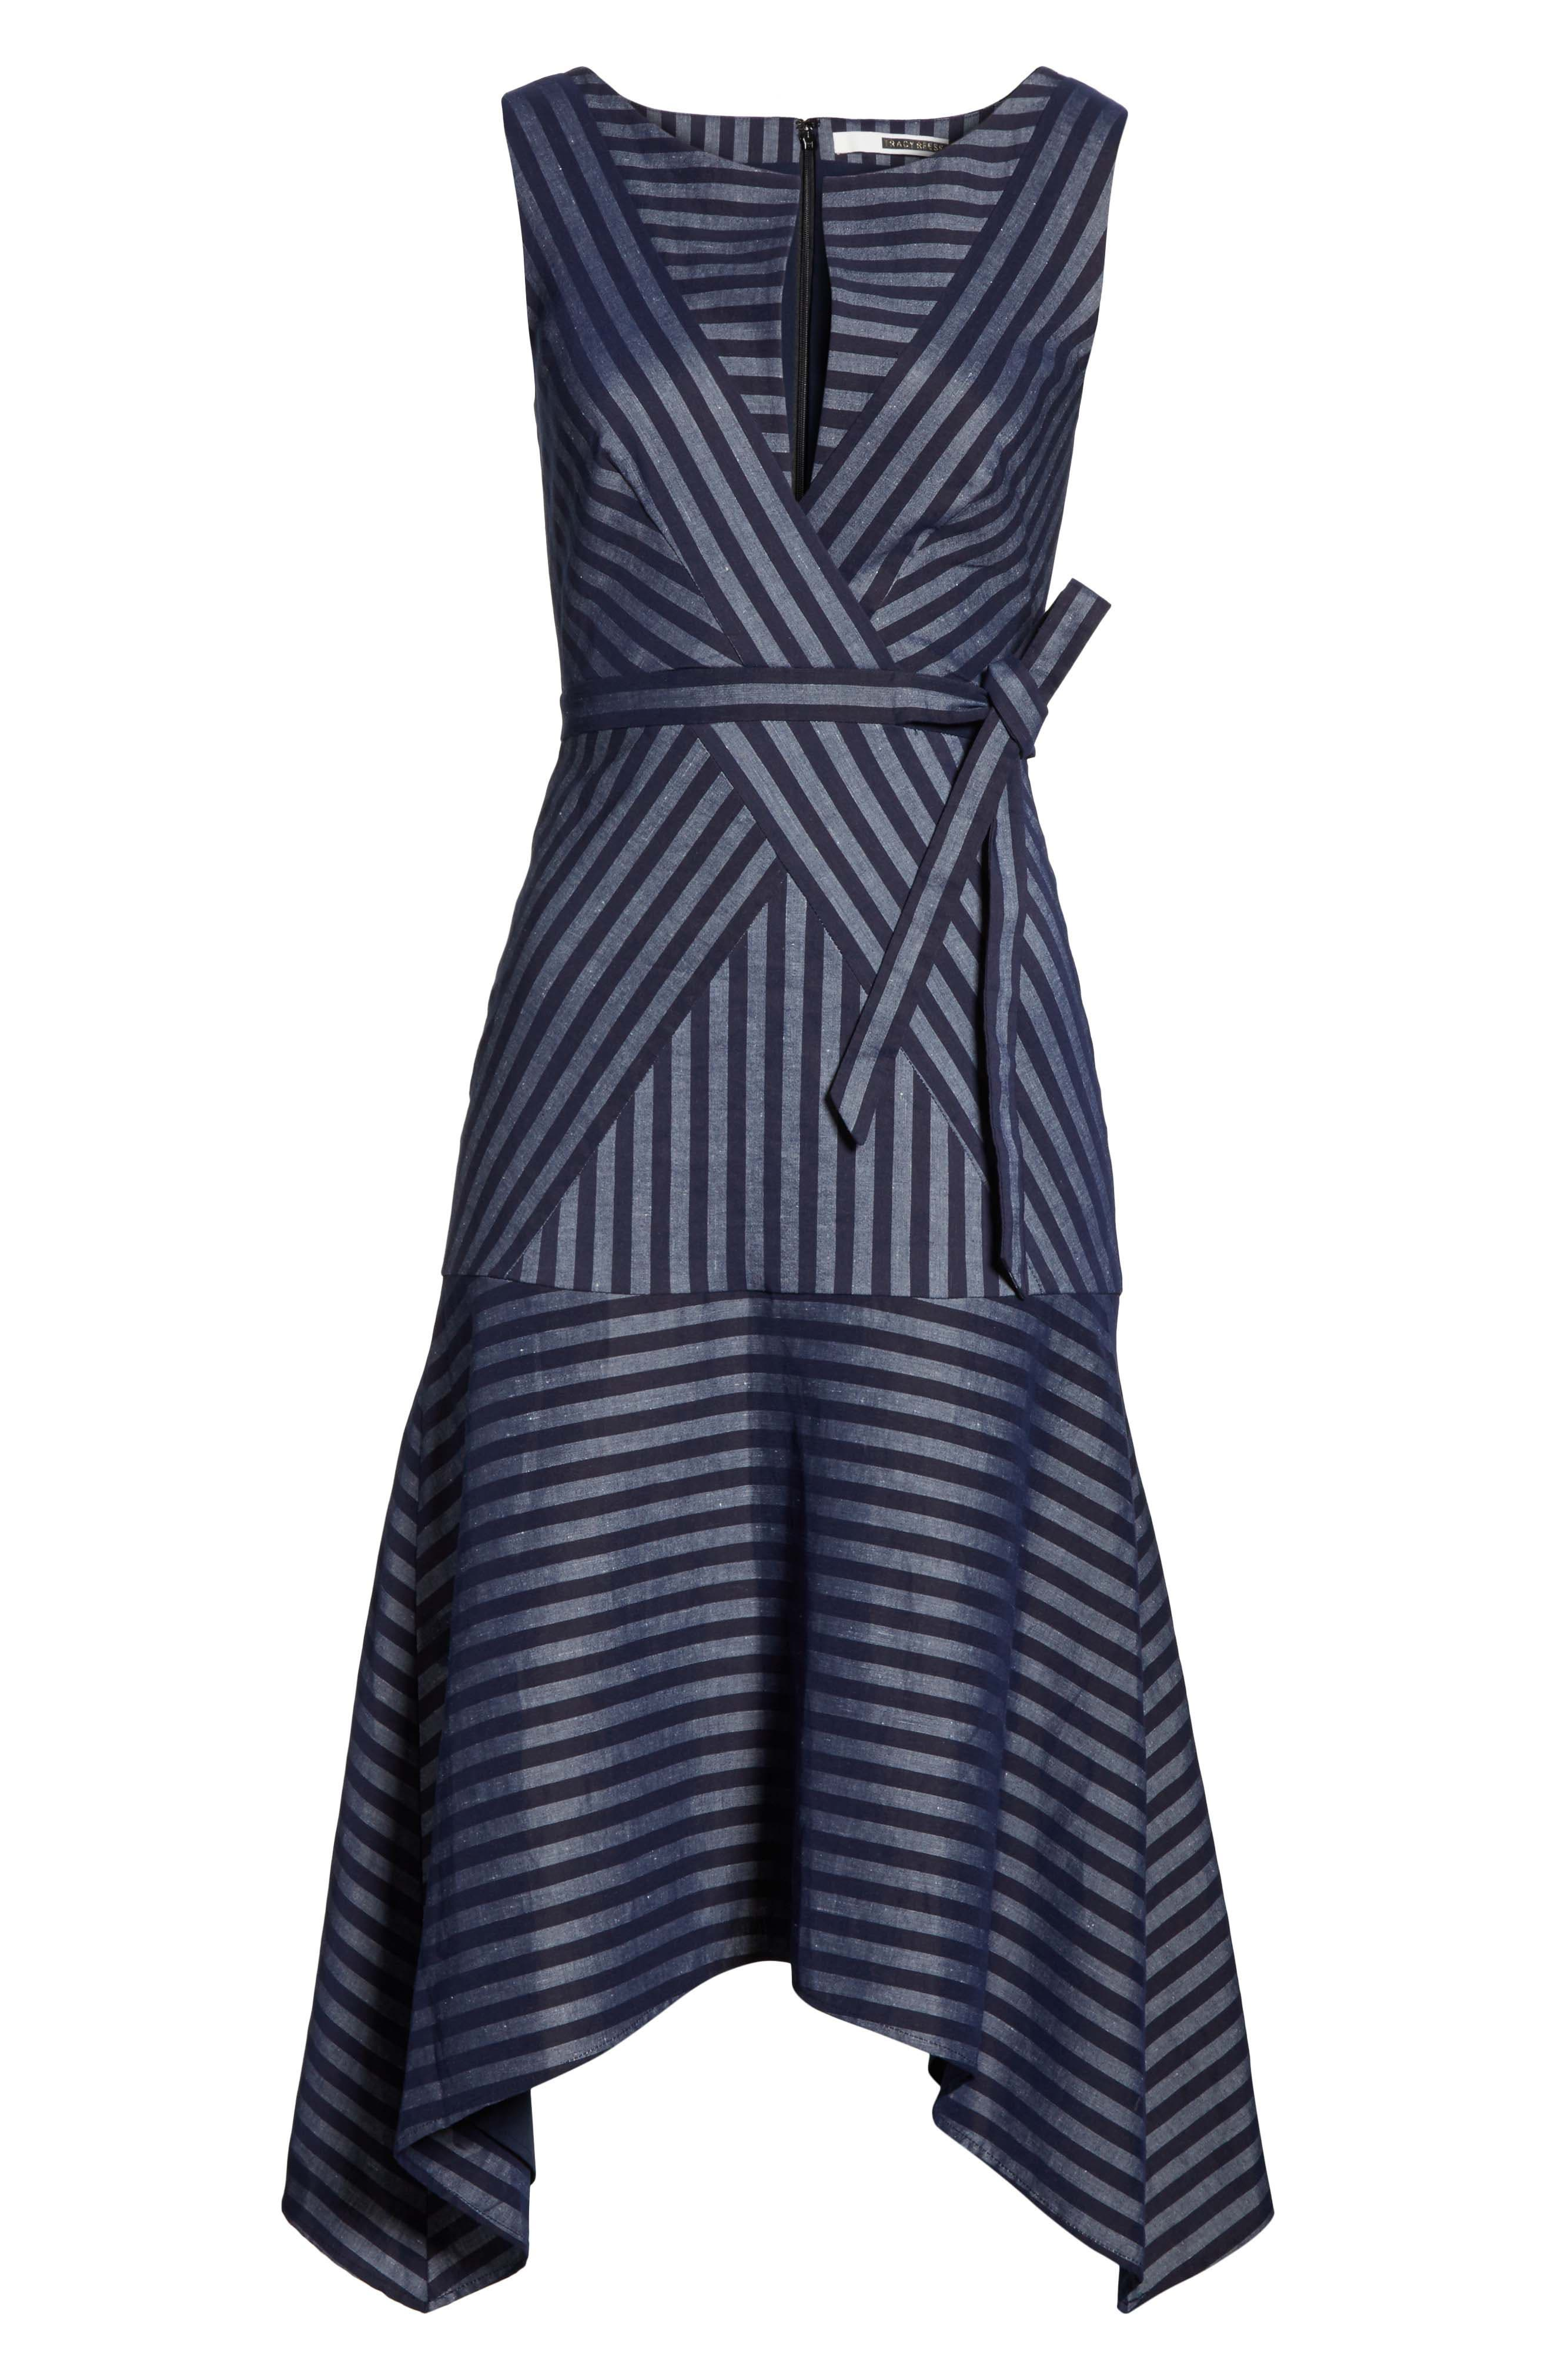 TRACY REESE,                             Directional Stripe A-Line Dress,                             Alternate thumbnail 6, color,                             417